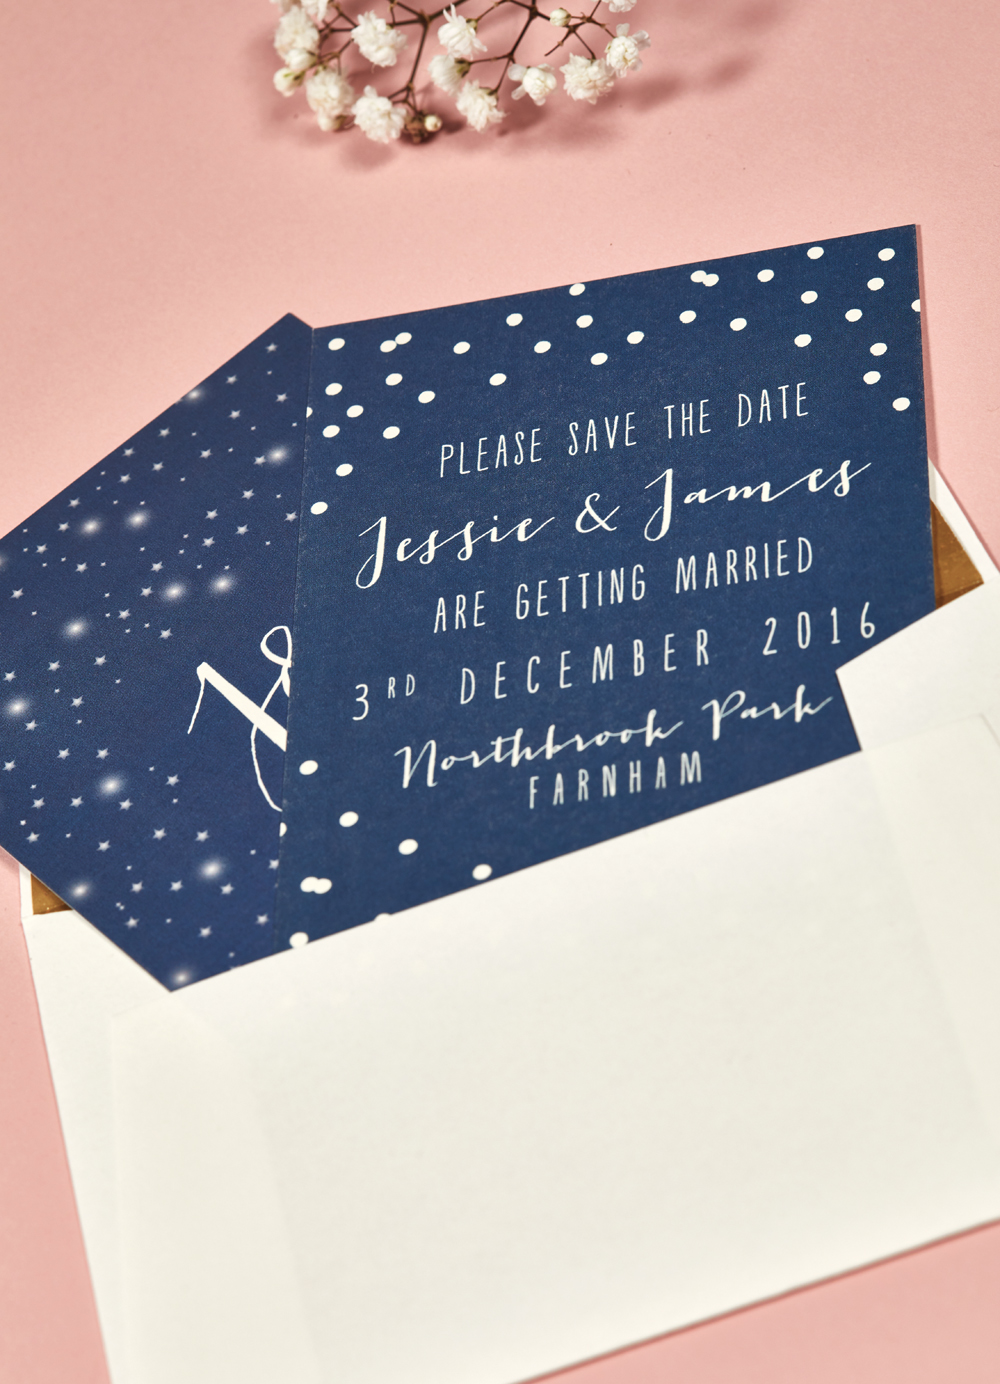 Jessie and James' bespoke Save the Date